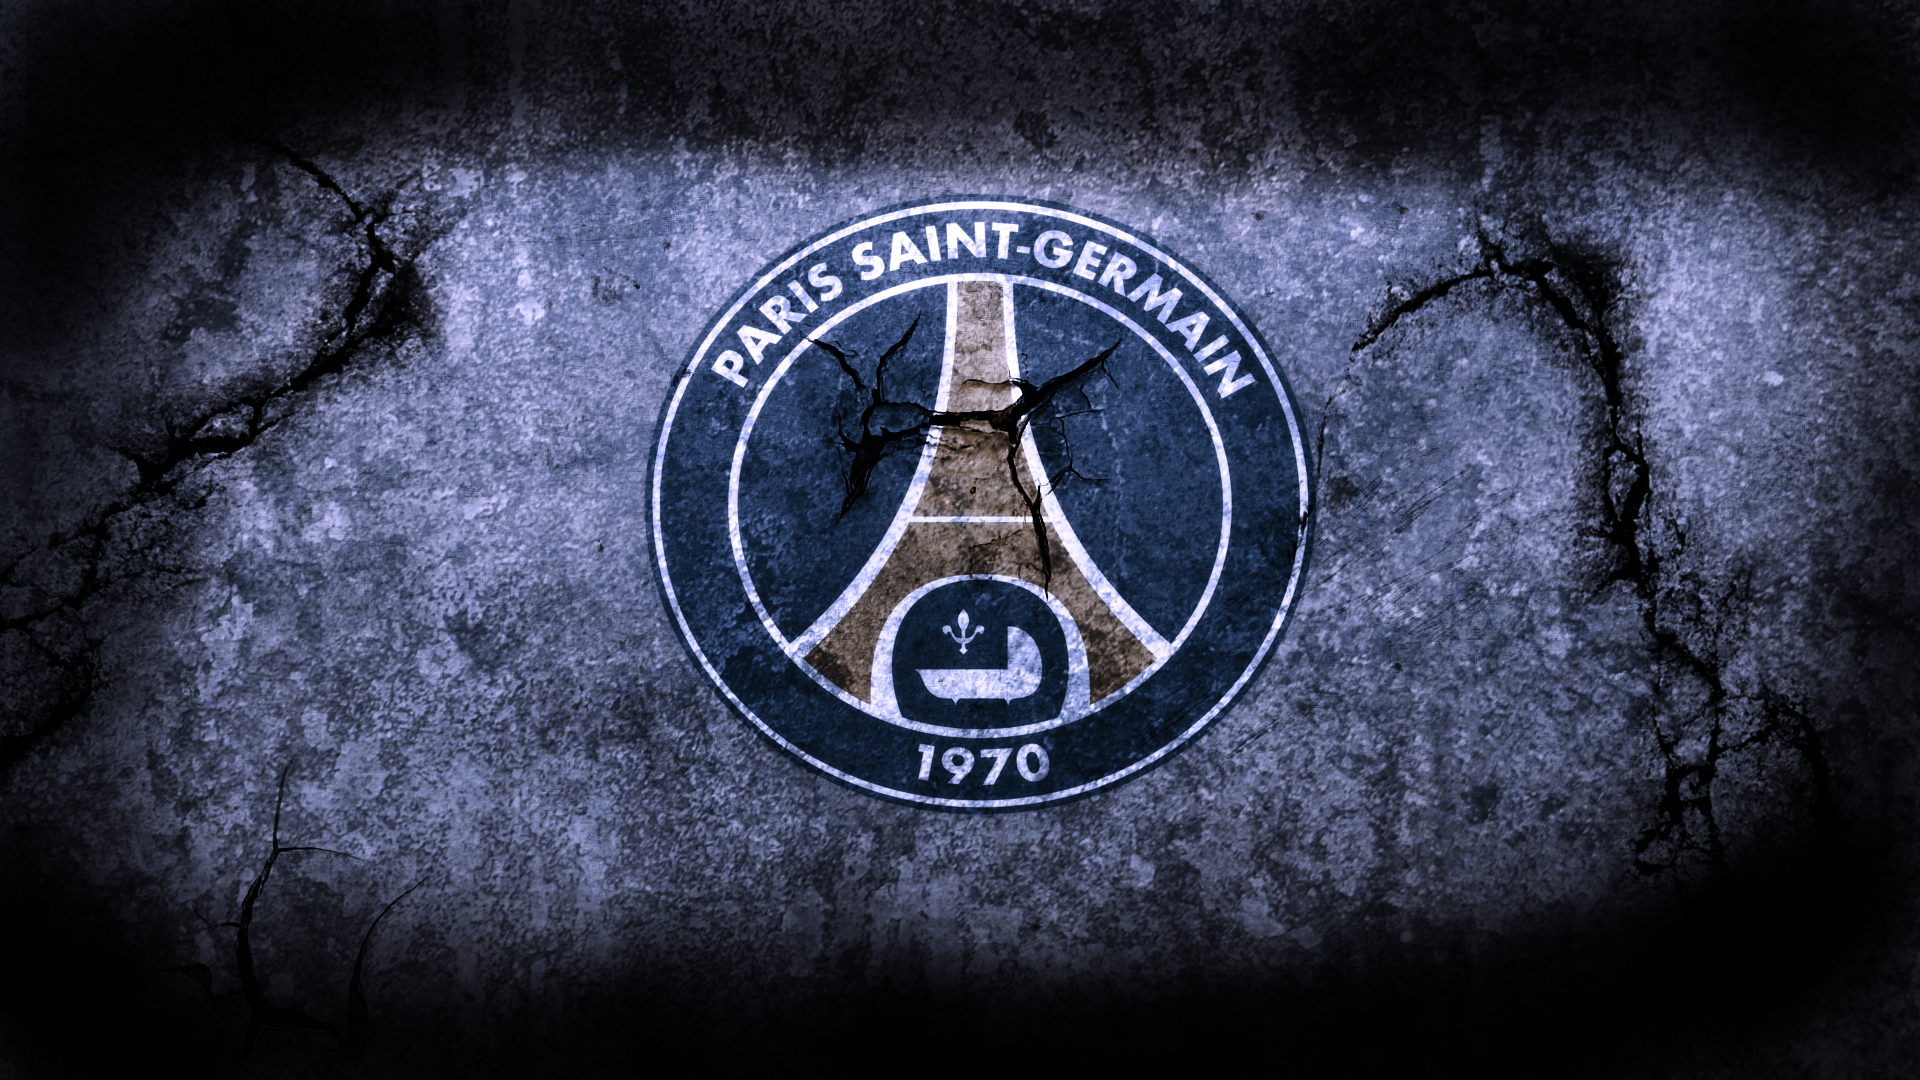 1920x1080 - Paris Saint-Germain F.C. Wallpapers 24